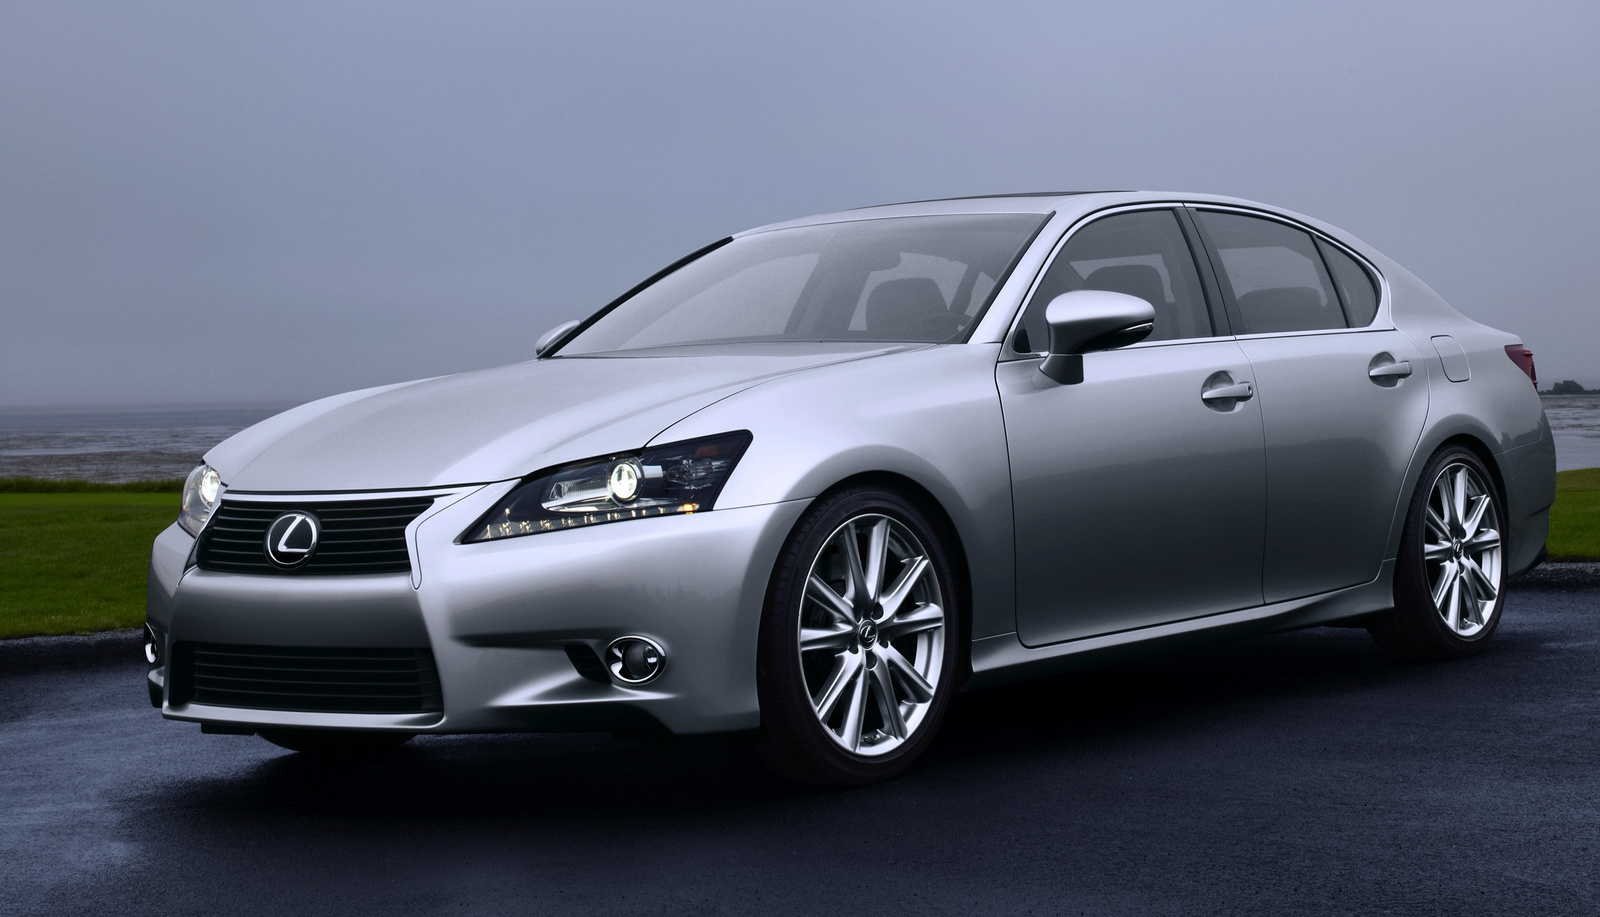 image gallery 2014 lexus gs 550. Black Bedroom Furniture Sets. Home Design Ideas